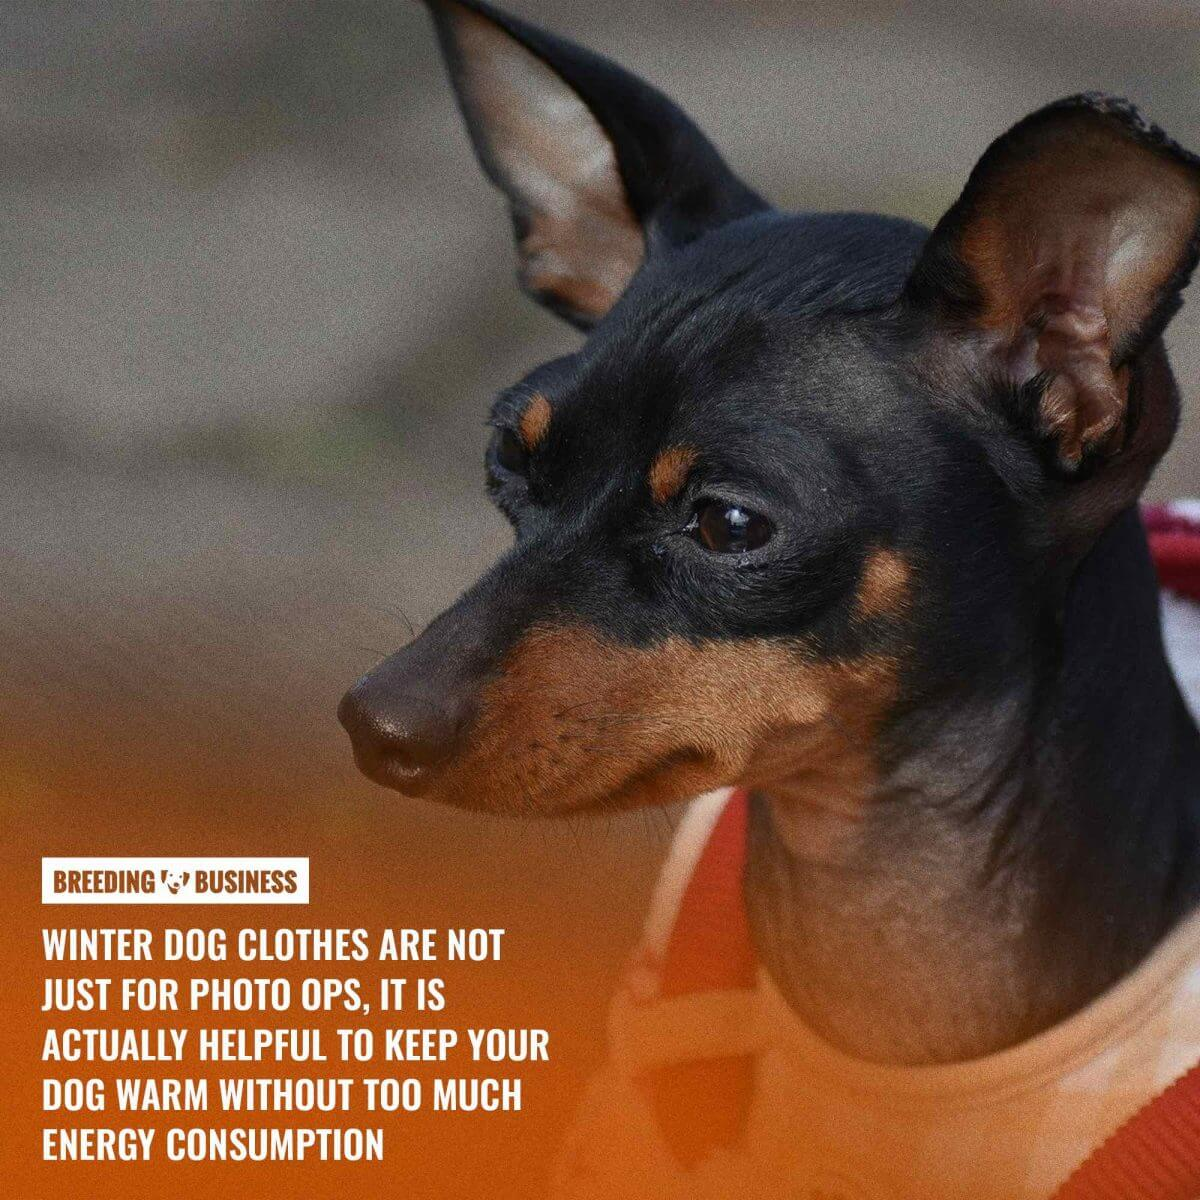 How to choose dog winter clothes?